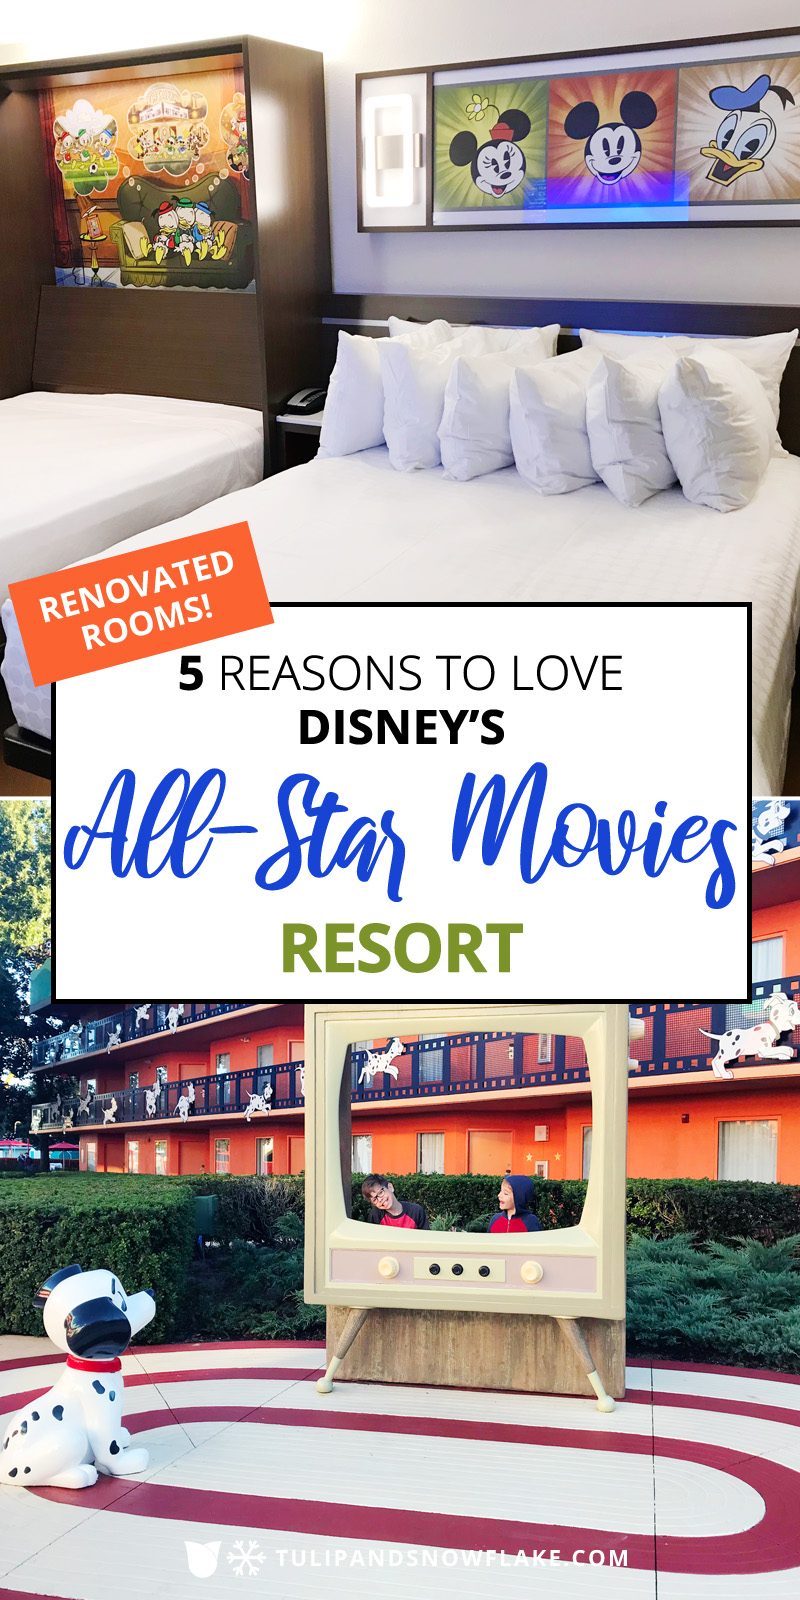 5 Reasons to Love Disney's All-Star Movies Resort